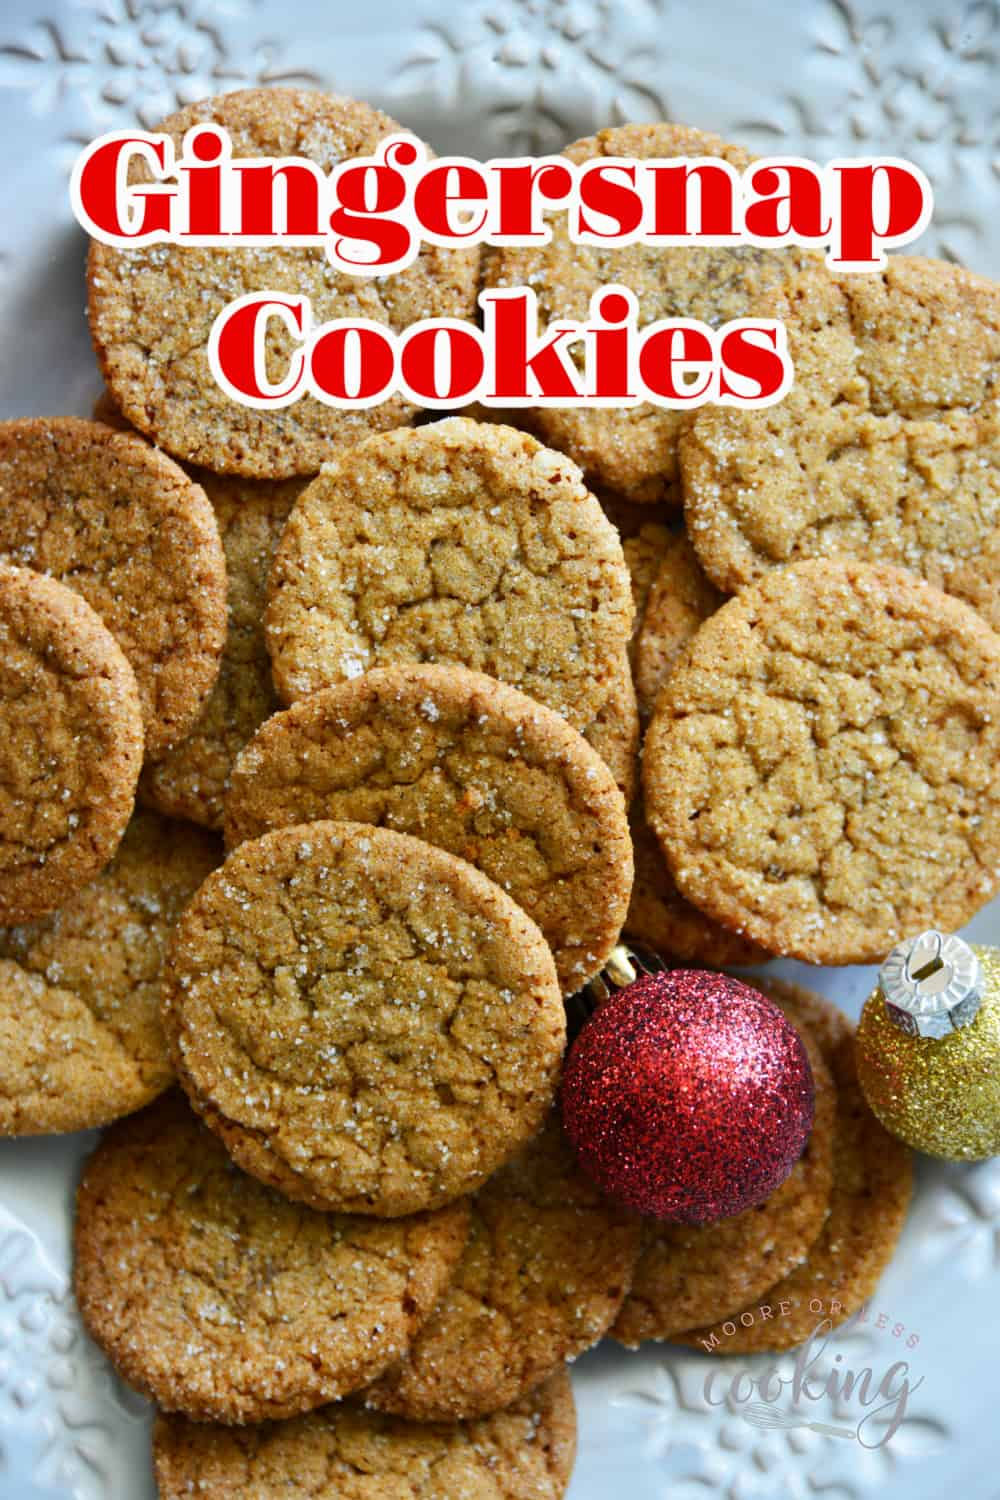 Gingersnap Cookies The rich molasses and bold spices make these easy gingersnap cookies a holiday favorite. The crisp texture and caramelized flavor are a classic that everyone loves! via @Mooreorlesscook